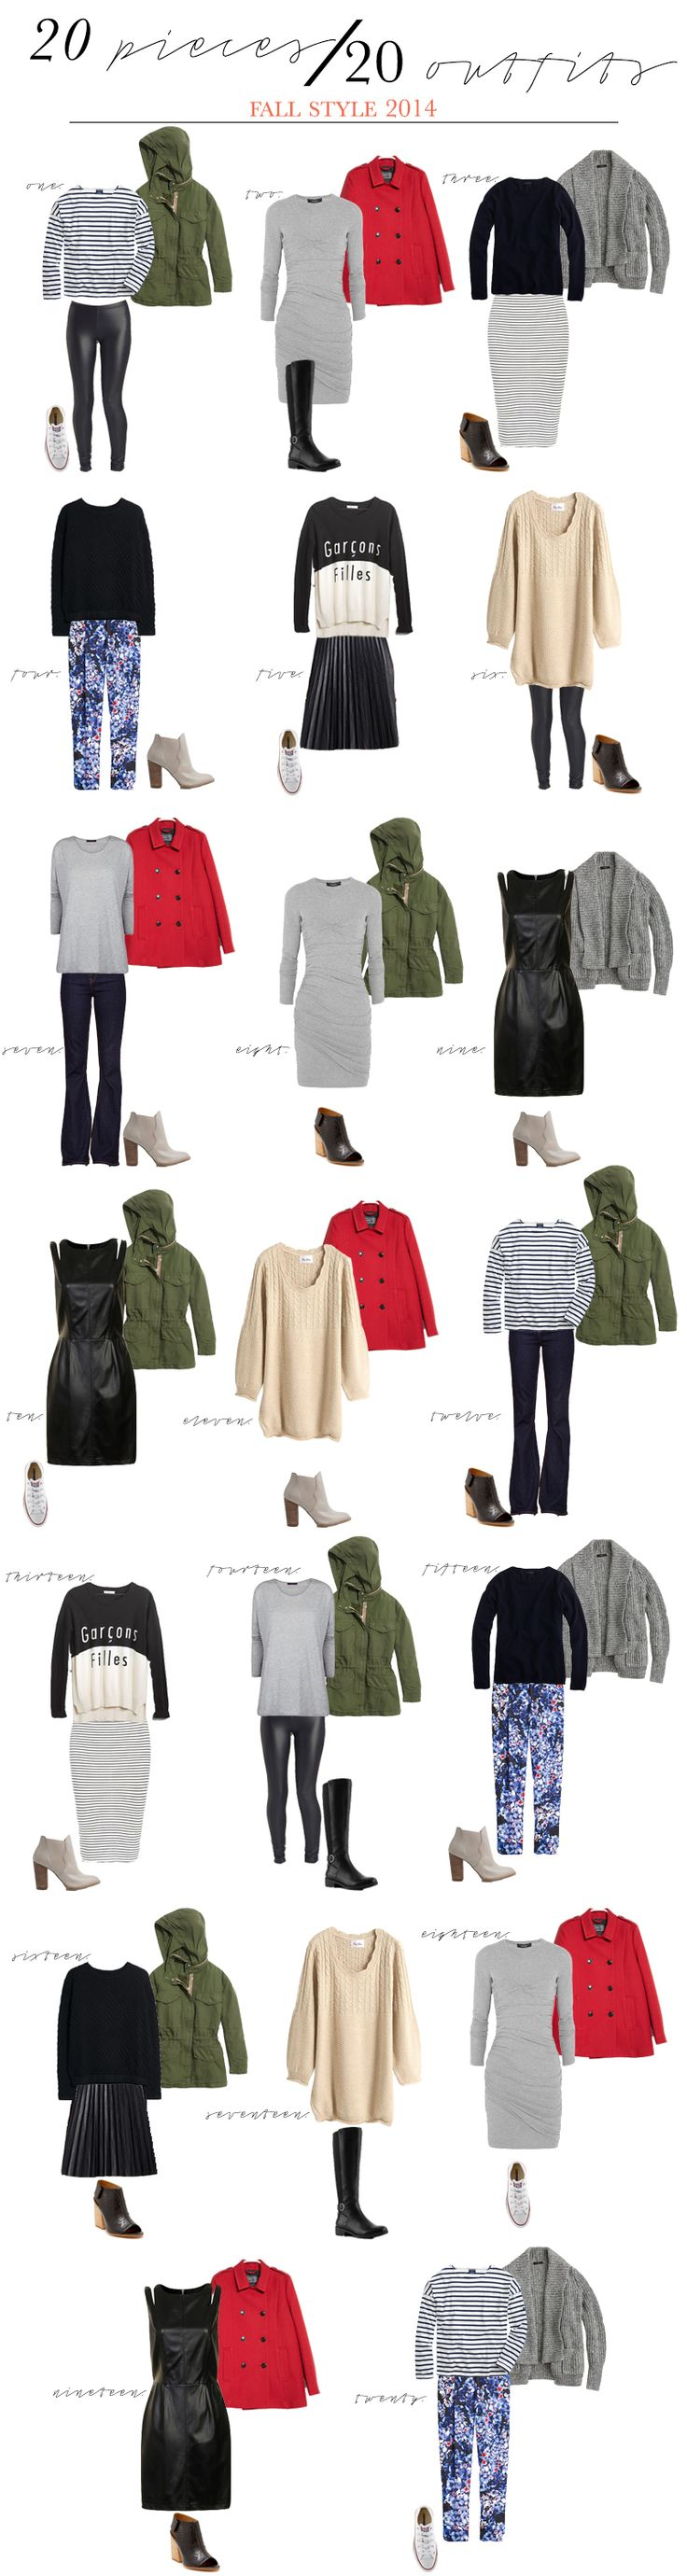 20 Pieces | 20 Outfits Fall Style 2014